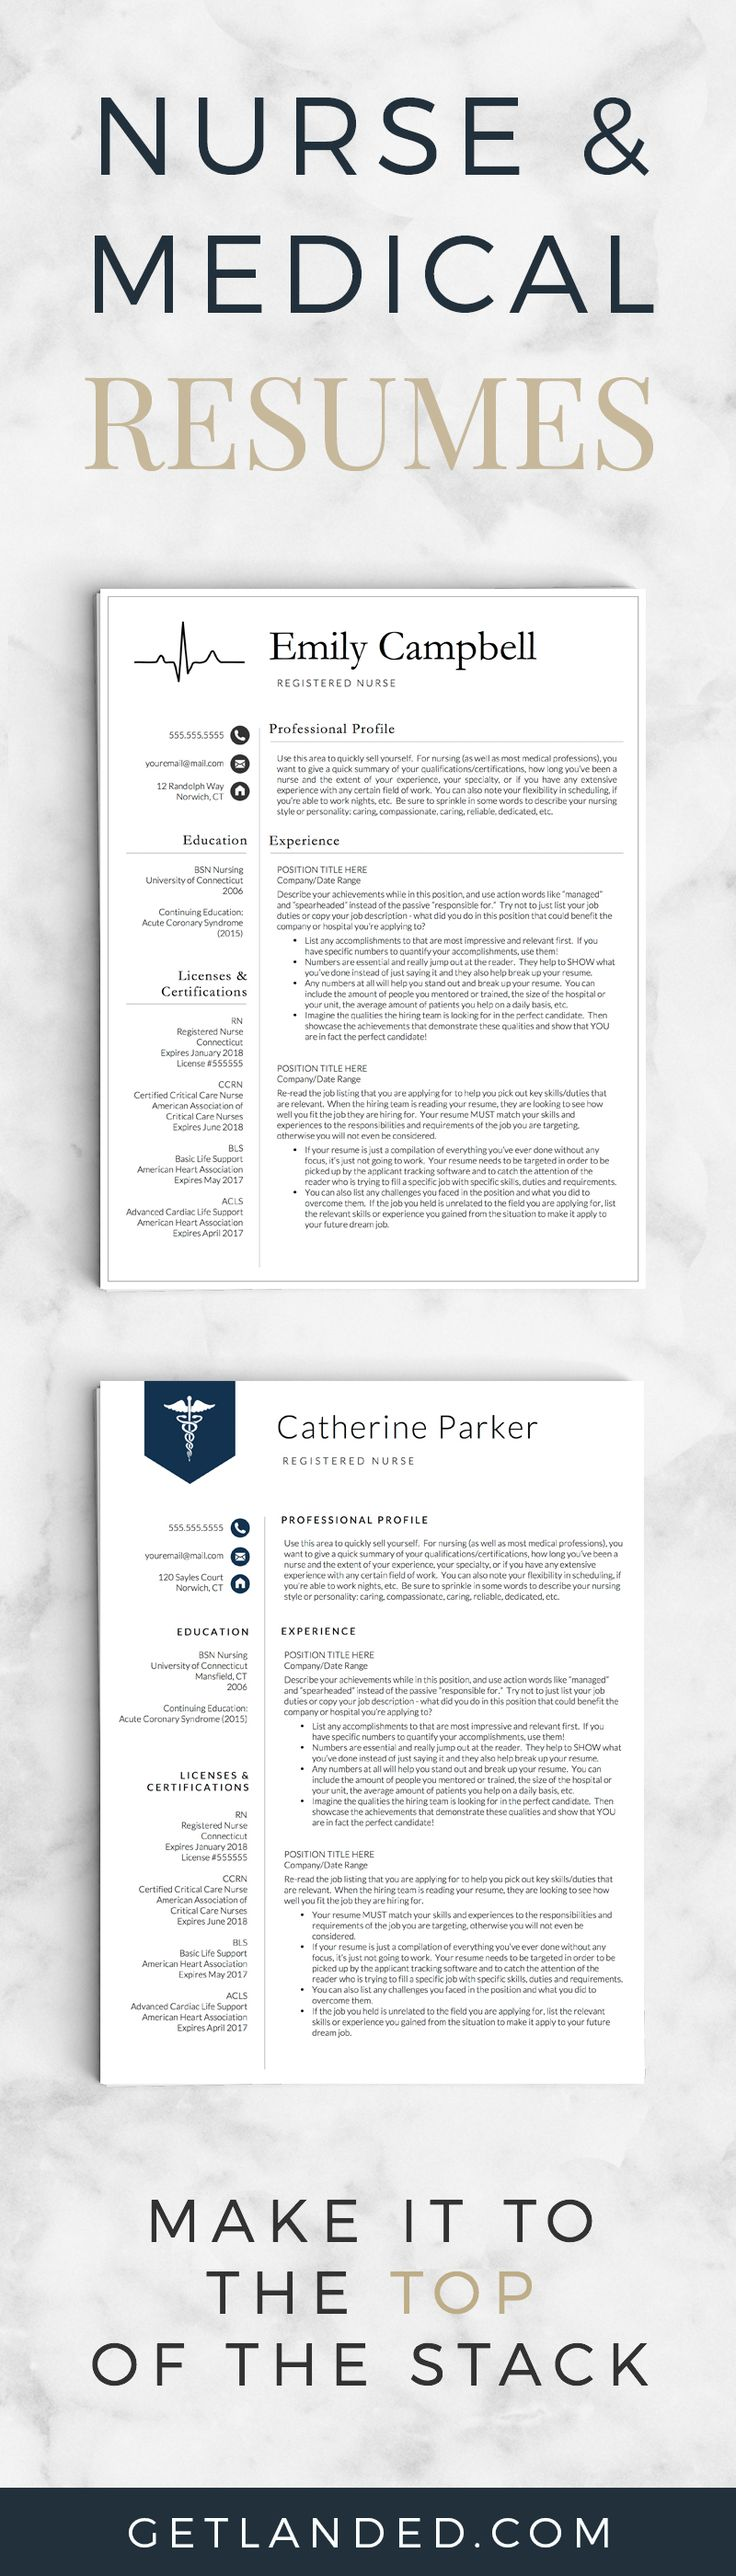 best images about professional resume templates nurse resume templates medical resumes resume templates specifically designed for the nursing profession